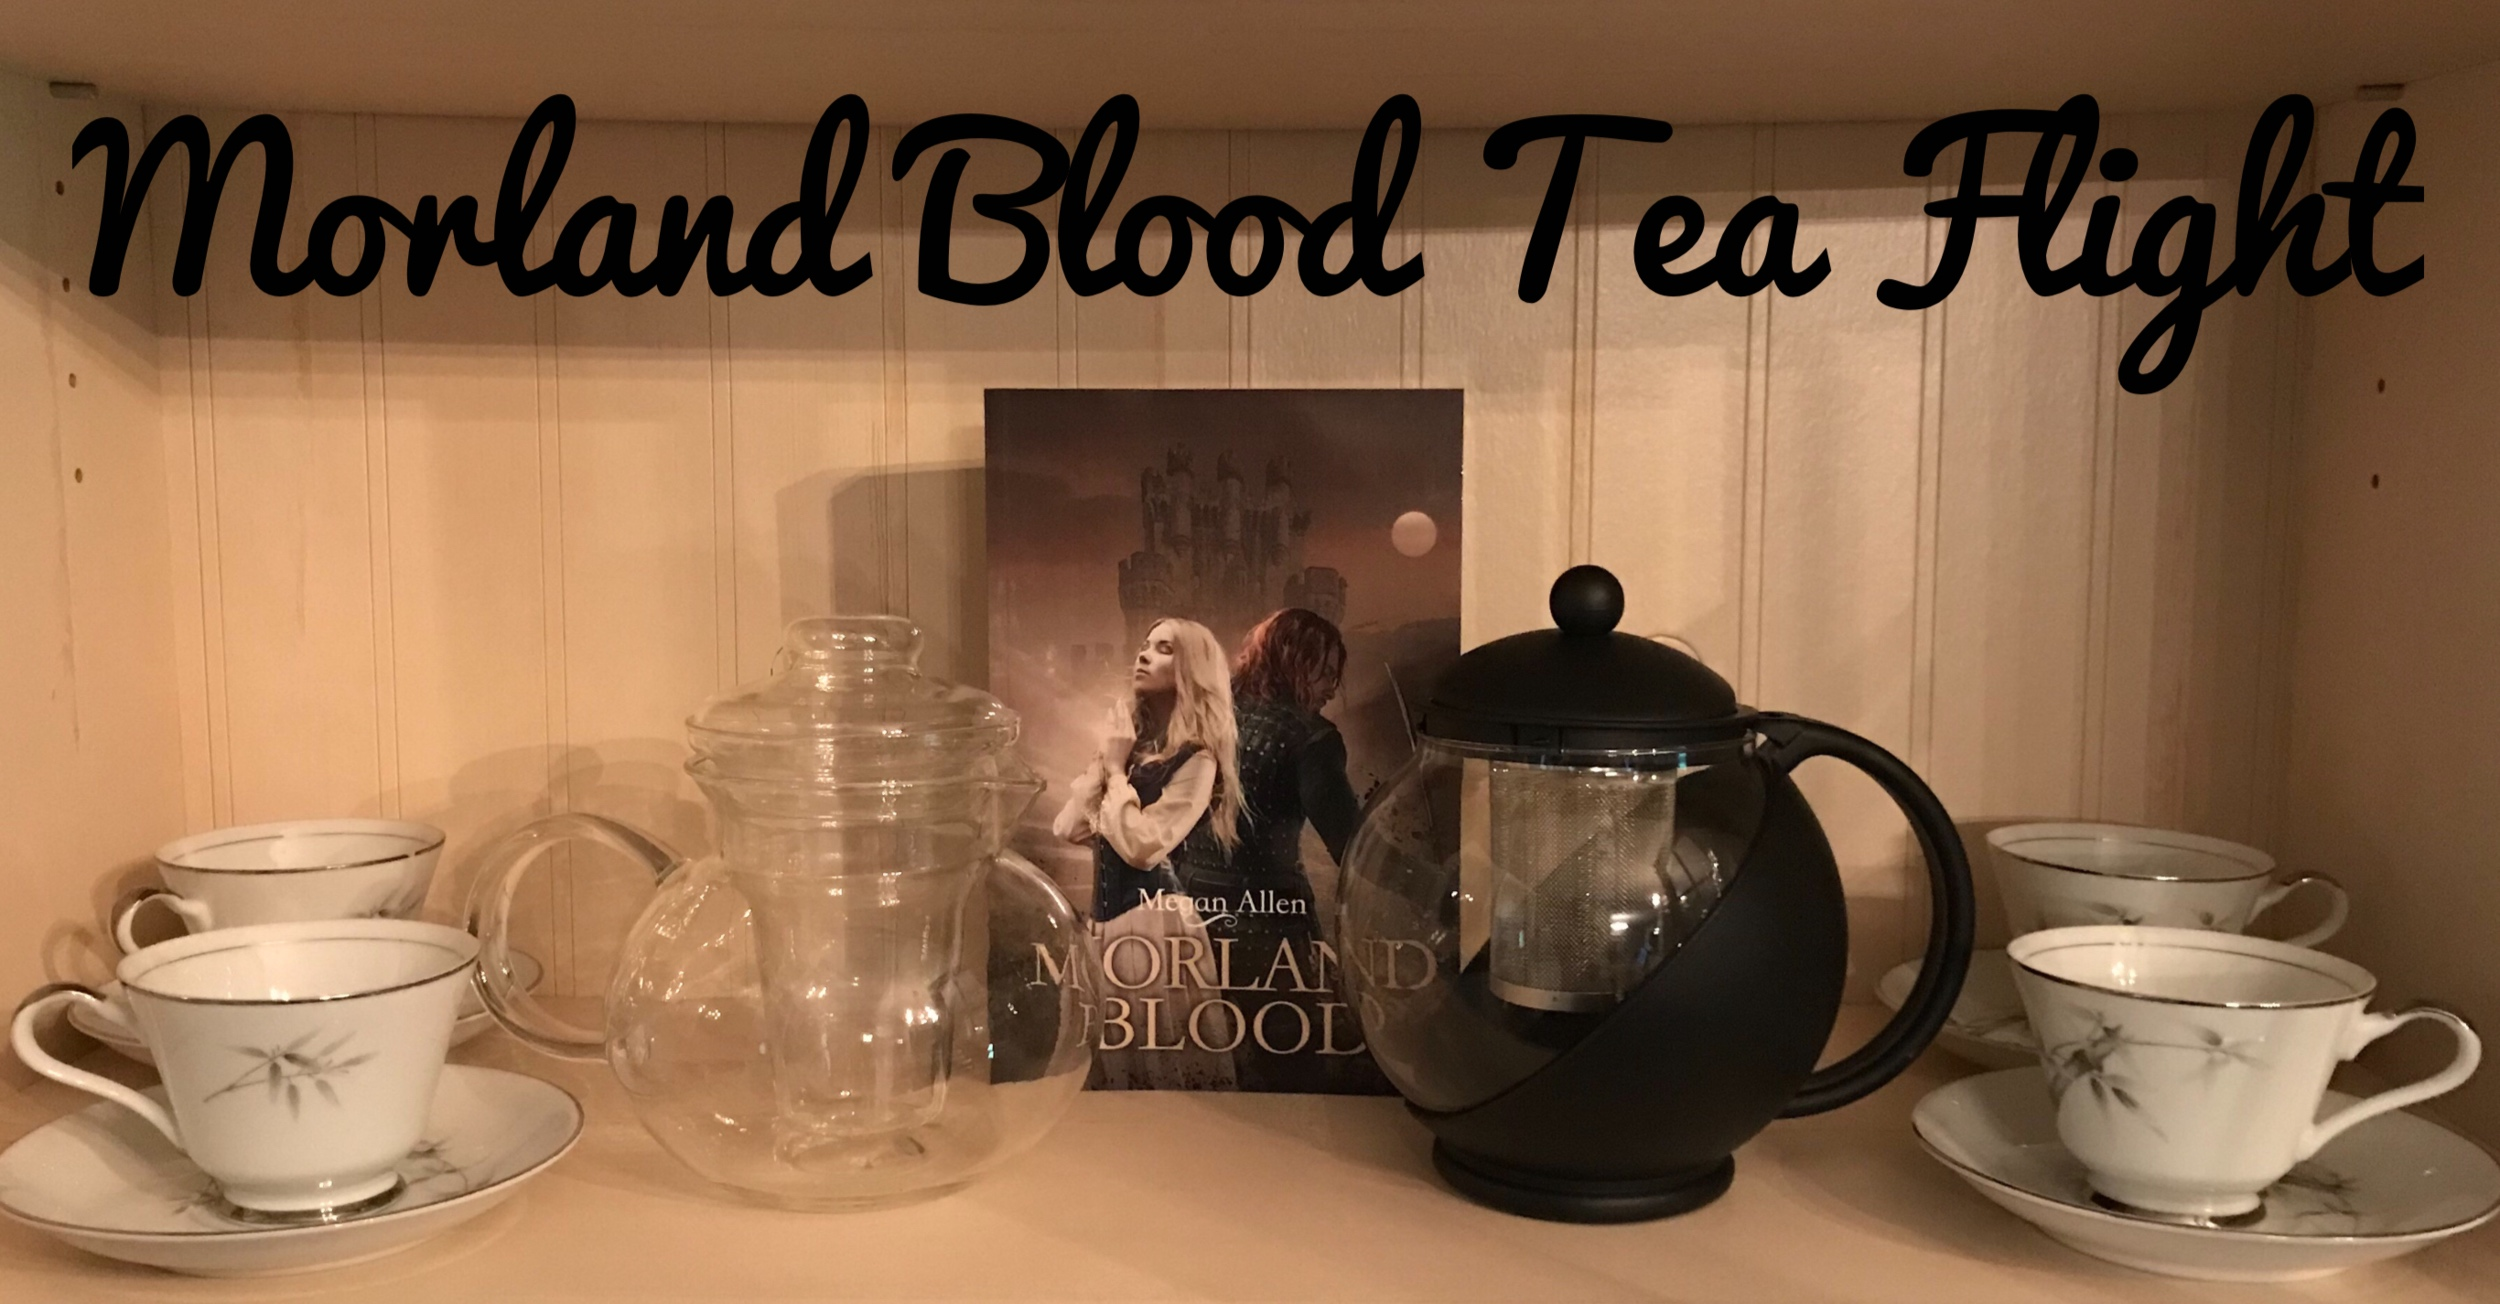 Morland-blood-tea-flight.jpg